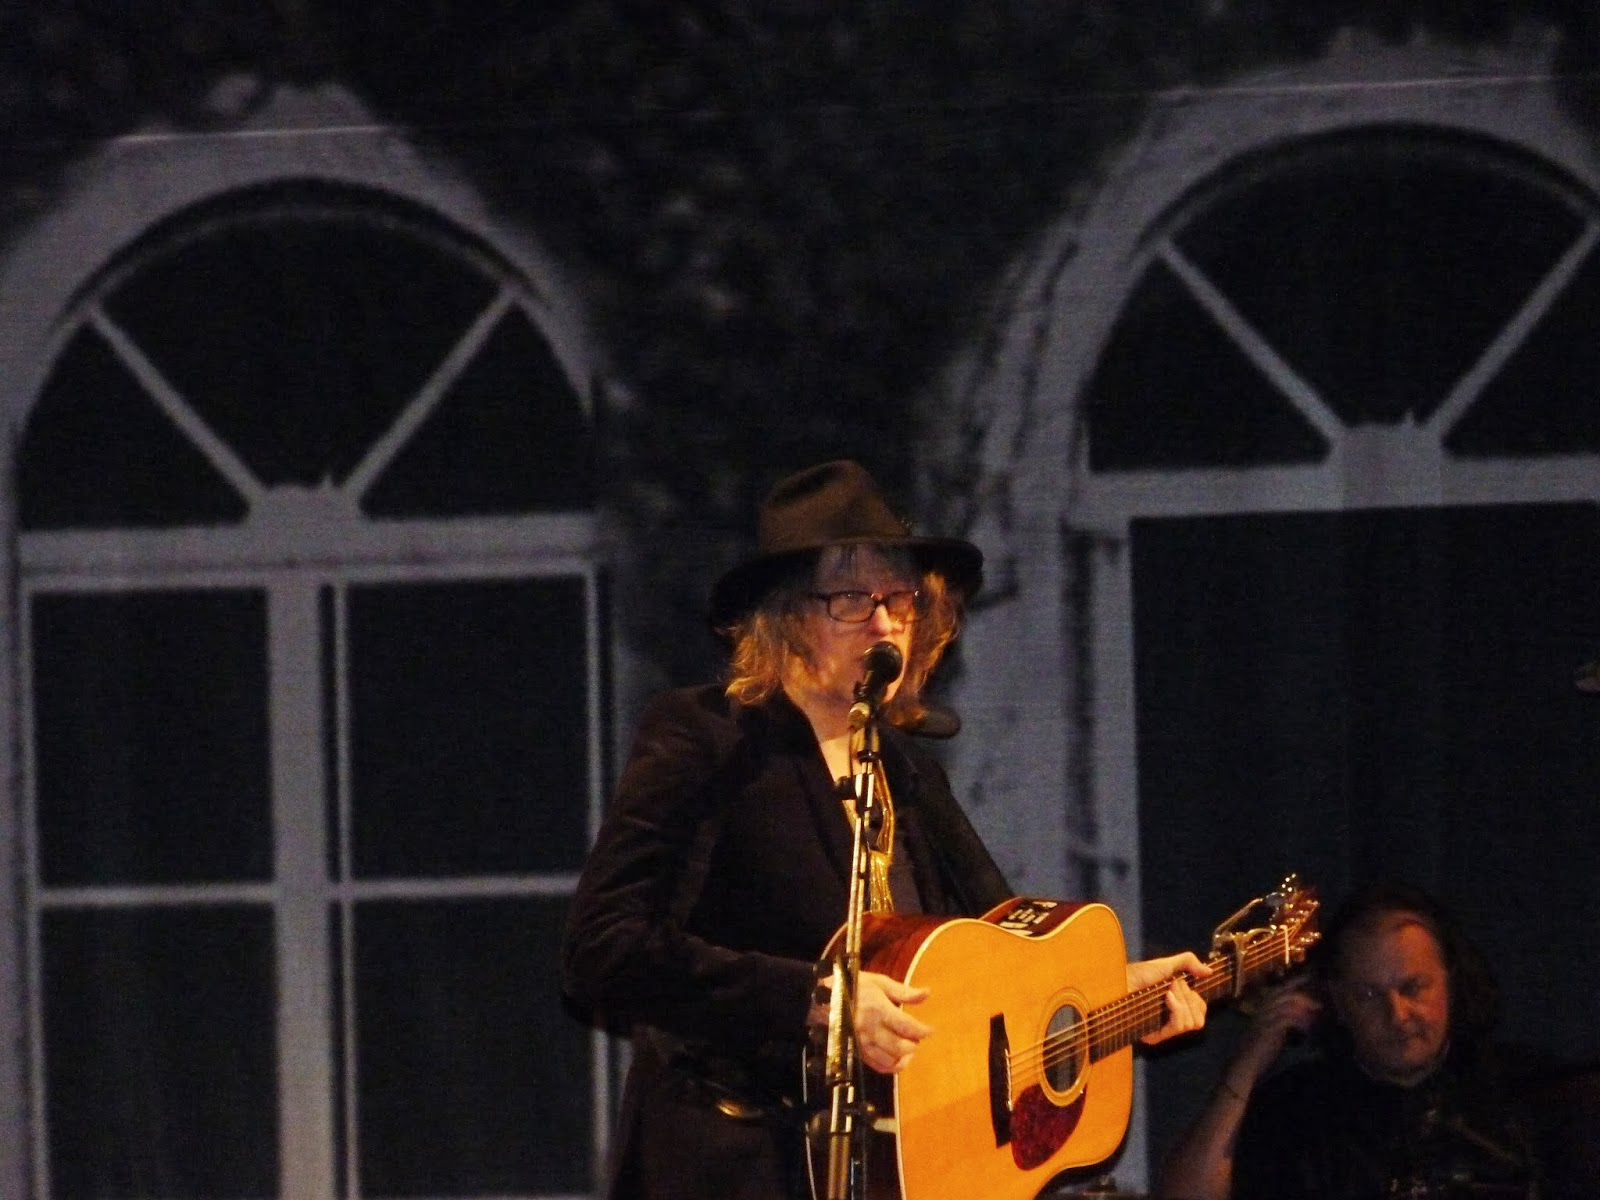 THE WATERBOYS, concierto en Valencia (30-11-13)